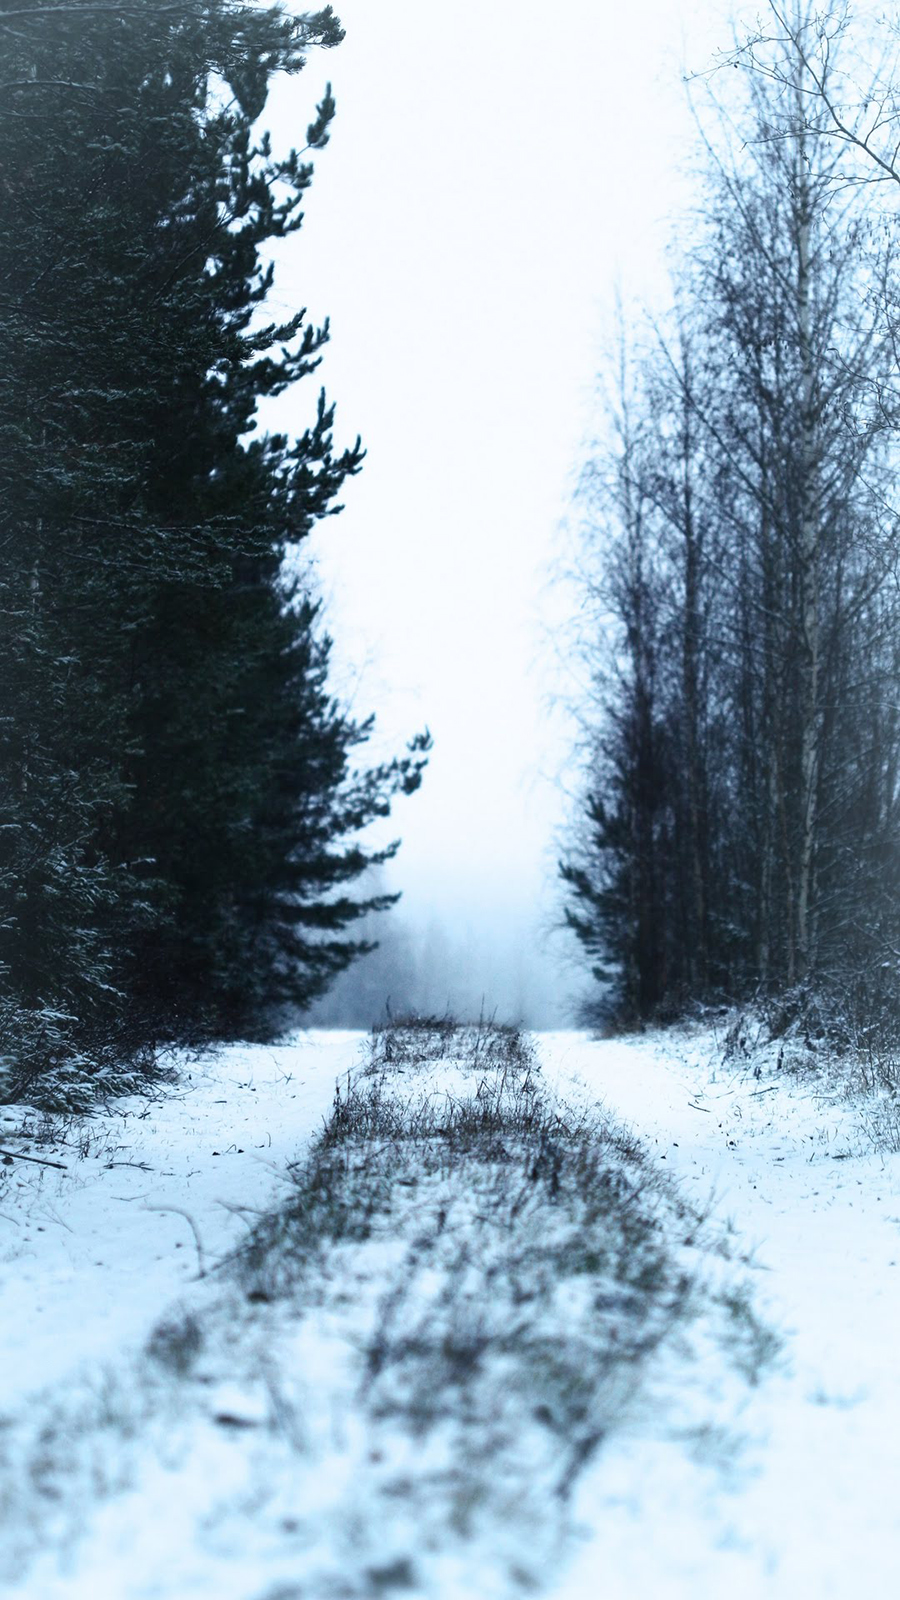 Snowy Road Wallpaper – Phone Road Wallpapers Free Download